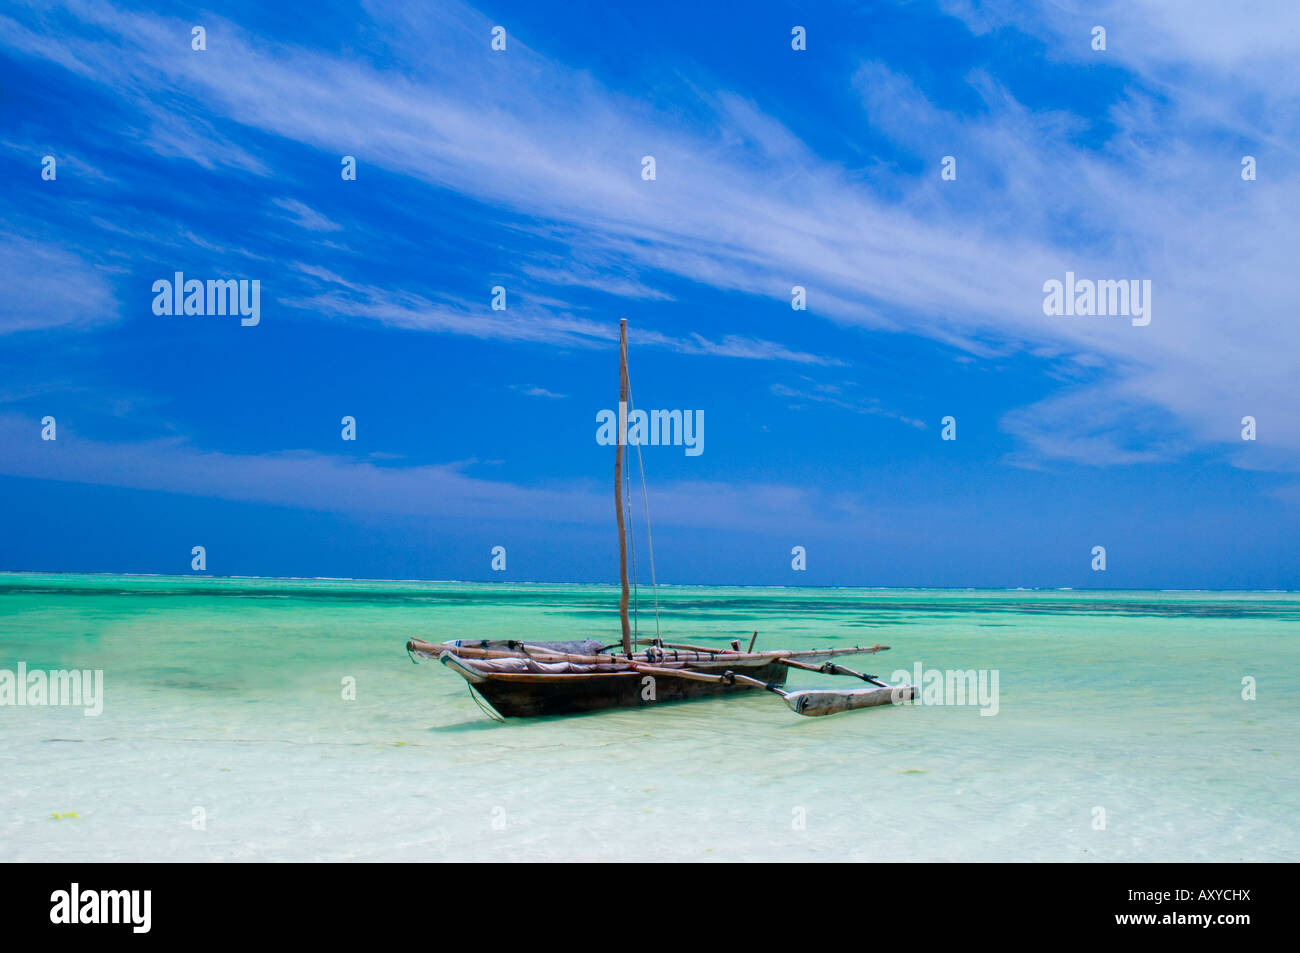 A dhow in the Indian Ocean, Paje, Zanzibar, Tanzania, East Africa, Africa - Stock Image